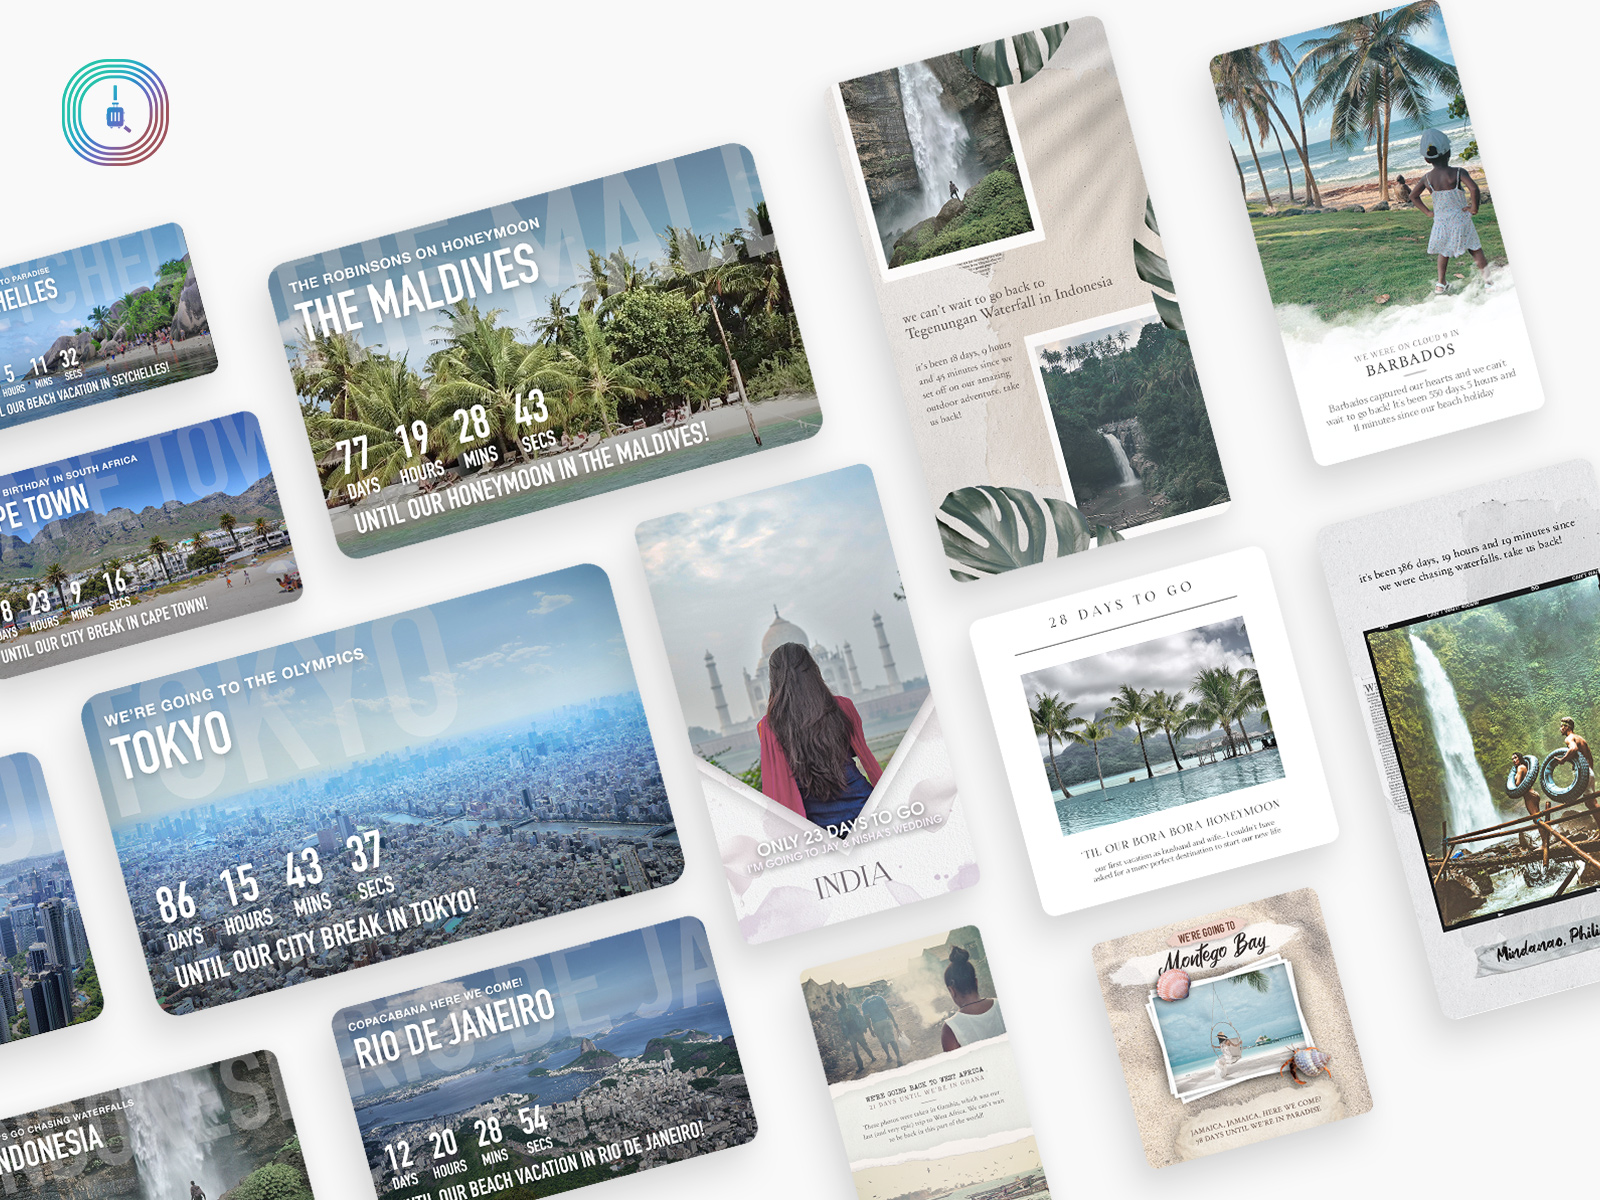 Can't Wait! New Holiday Countdown App Gets People Excited About Post-Covid Travel